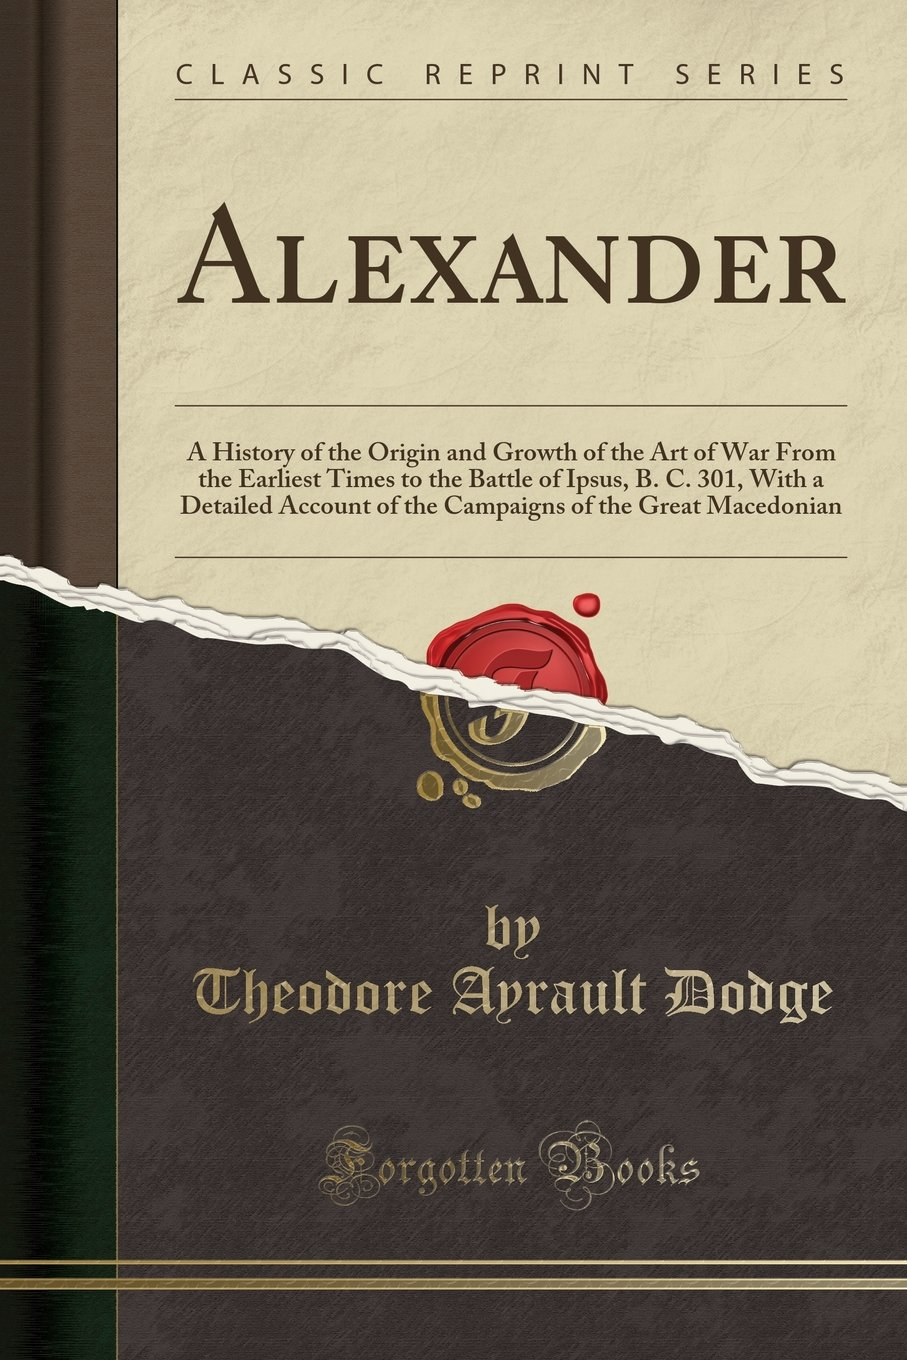 Download Alexander: A History of the Origin and Growth of the Art of War From the Earliest Times to the Battle of Ipsus, B. C. 301, With a Detailed Account of ... of the Great Macedonian (Classic Reprint) PDF